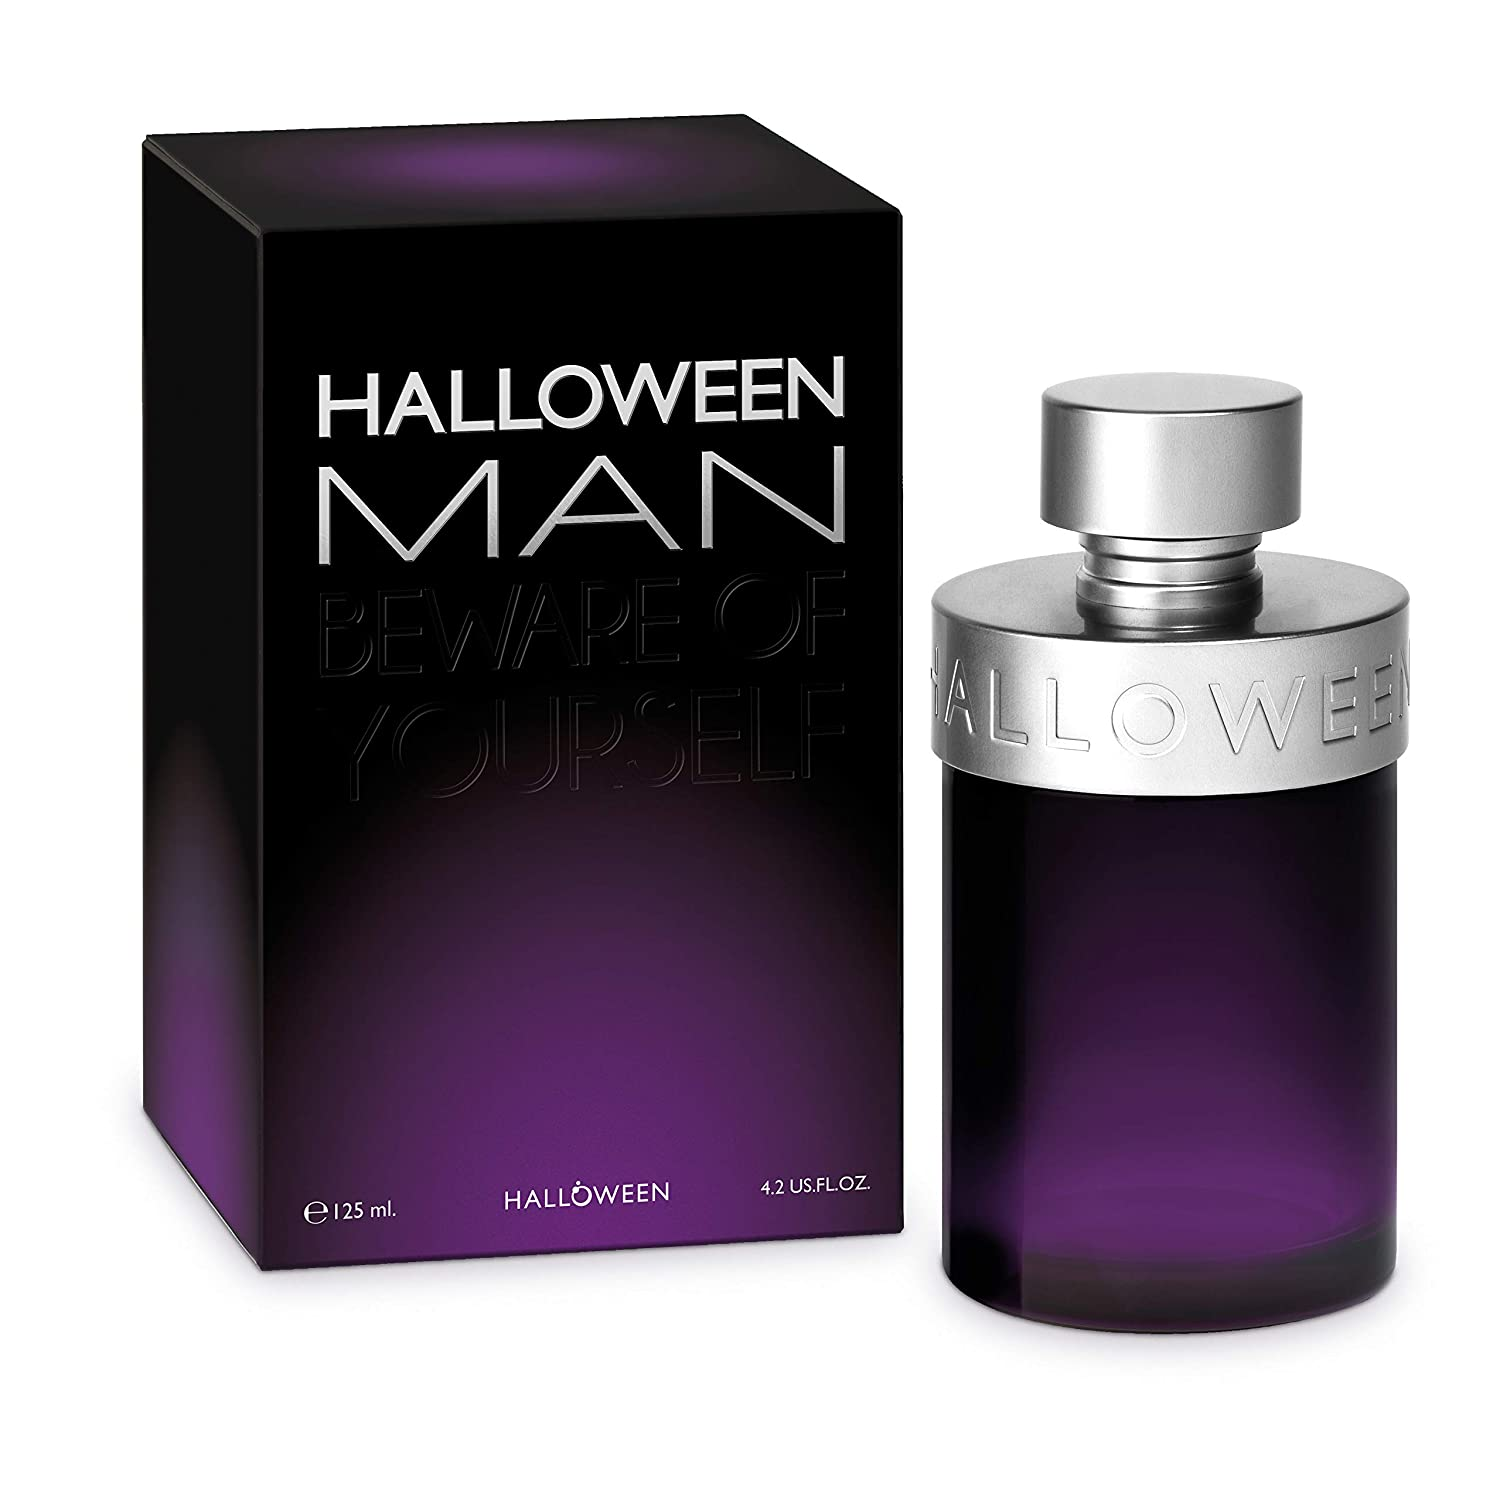 J. Del Pozo Halloween Man Eau de Toilette Spray for Men, 4.2 Ounce